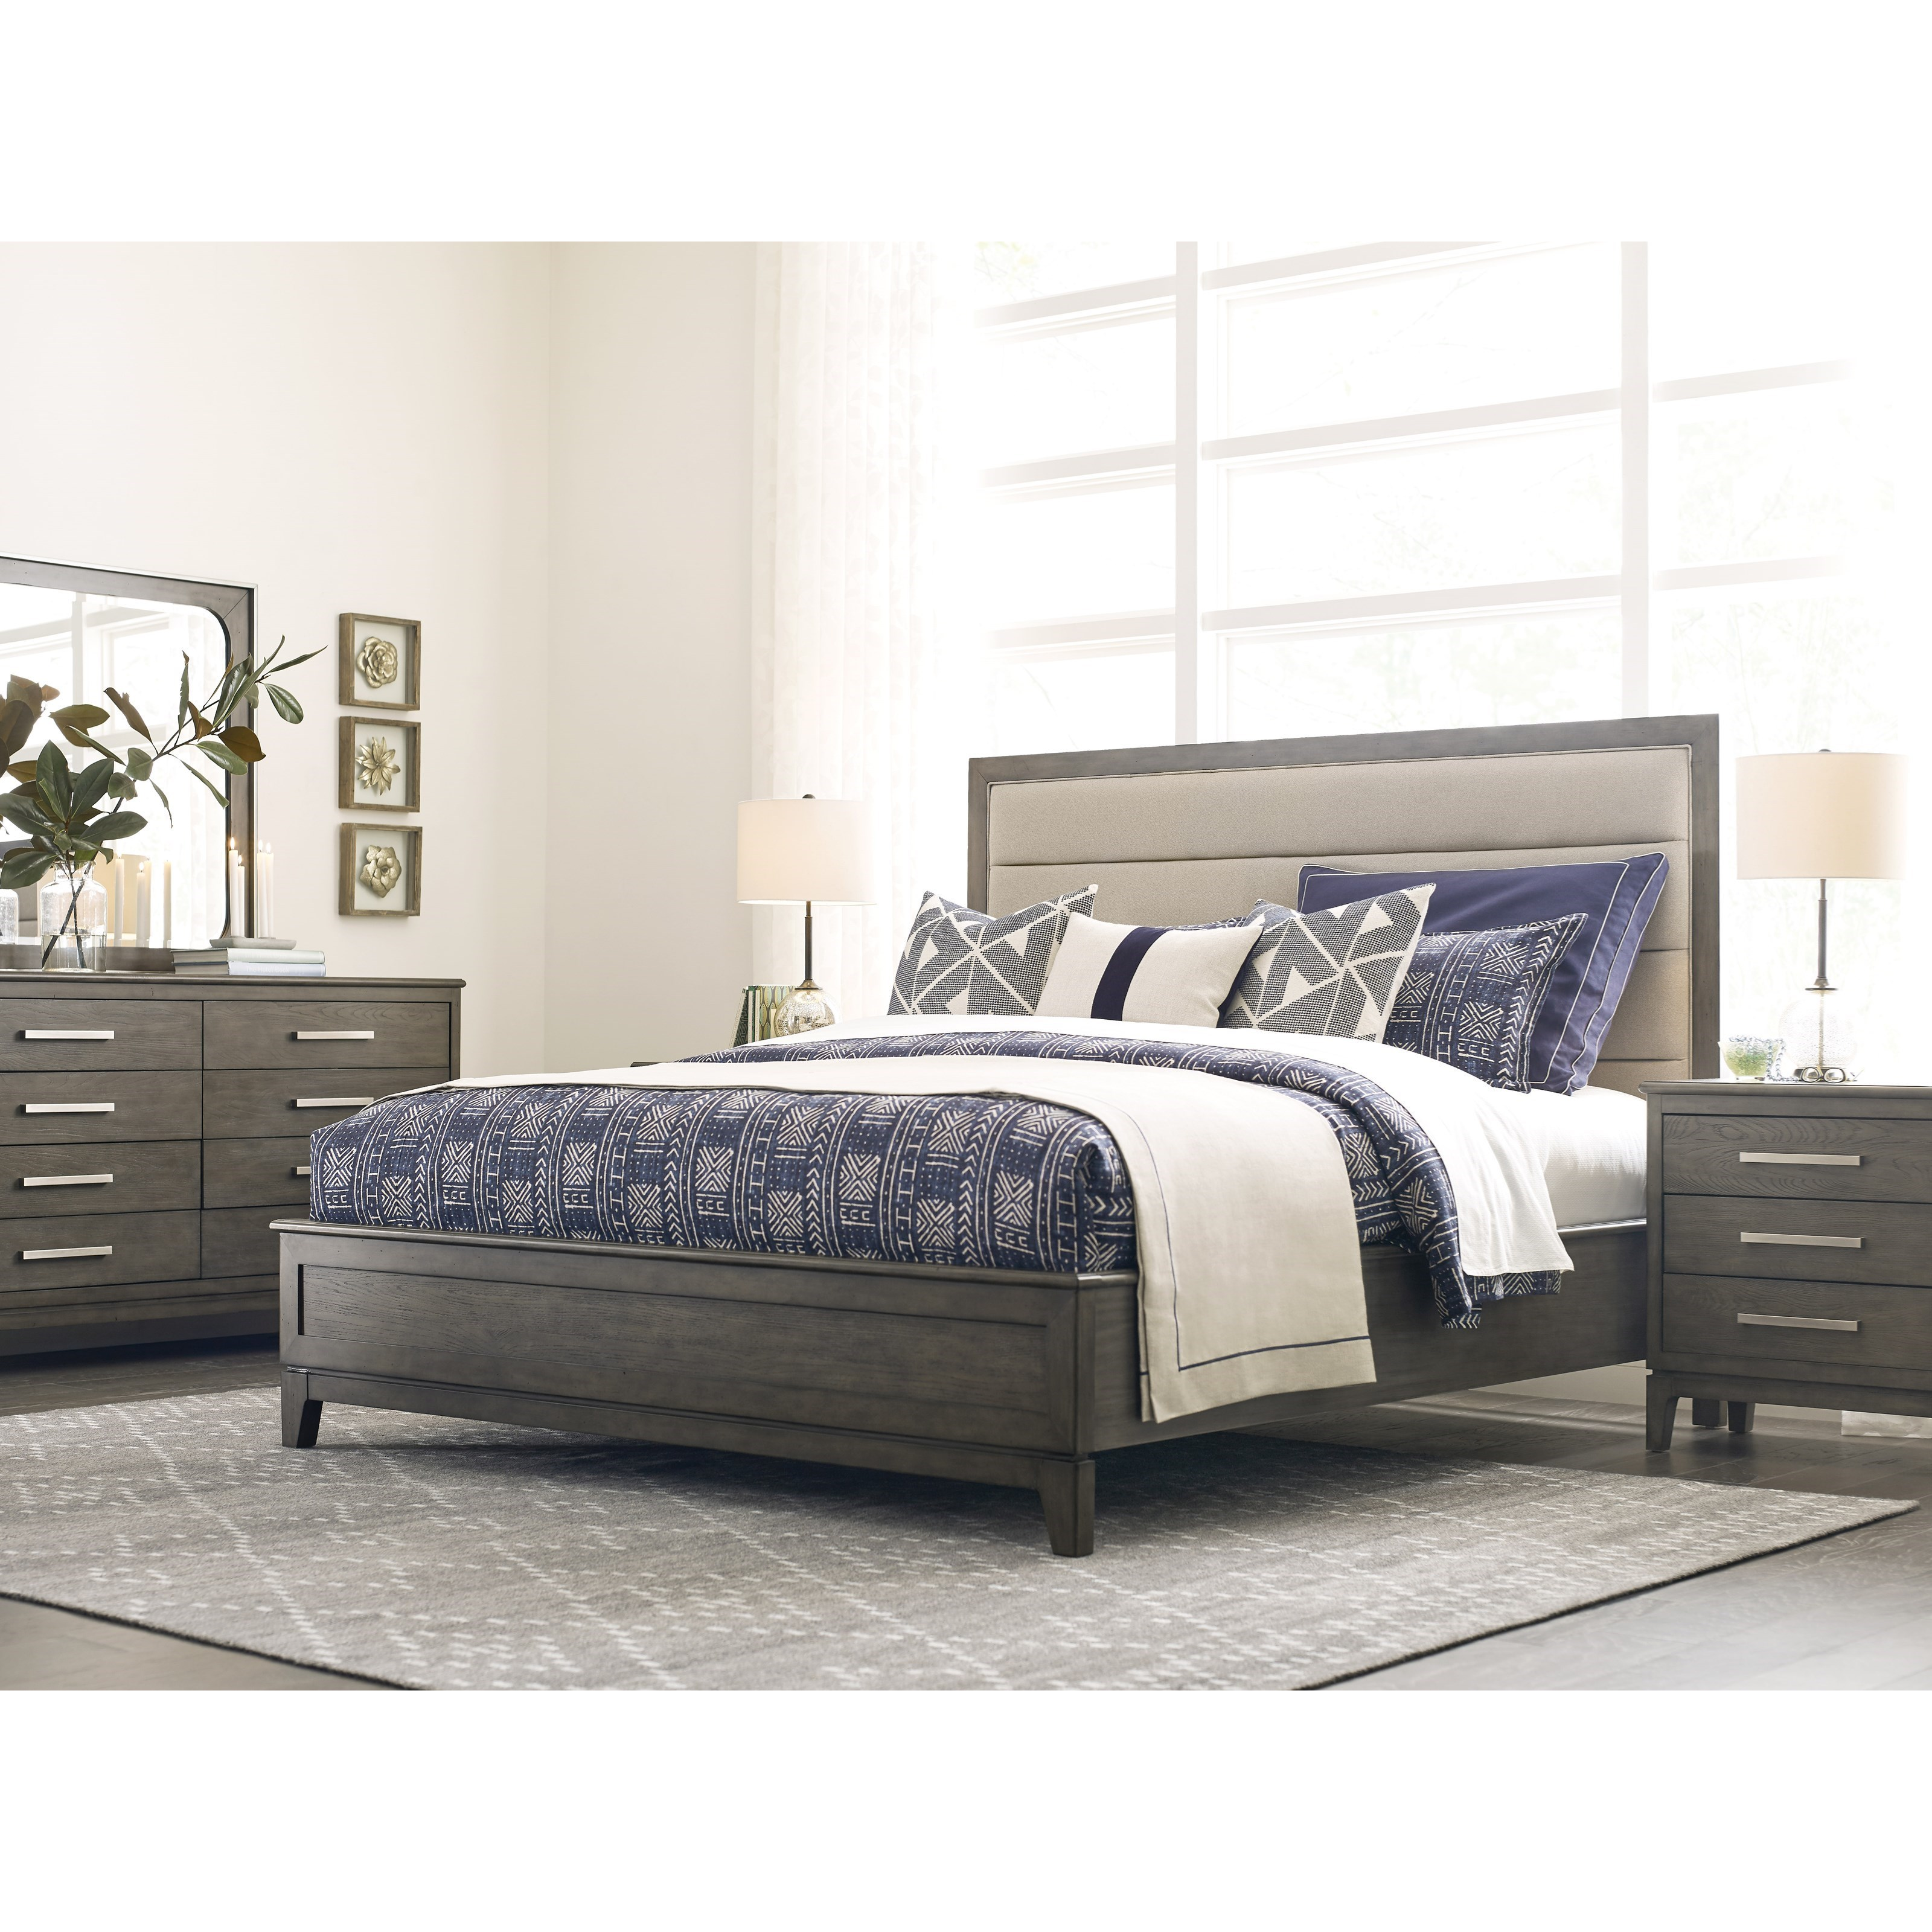 Cascade California King Bedroom Group by Kincaid Furniture at Northeast Factory Direct